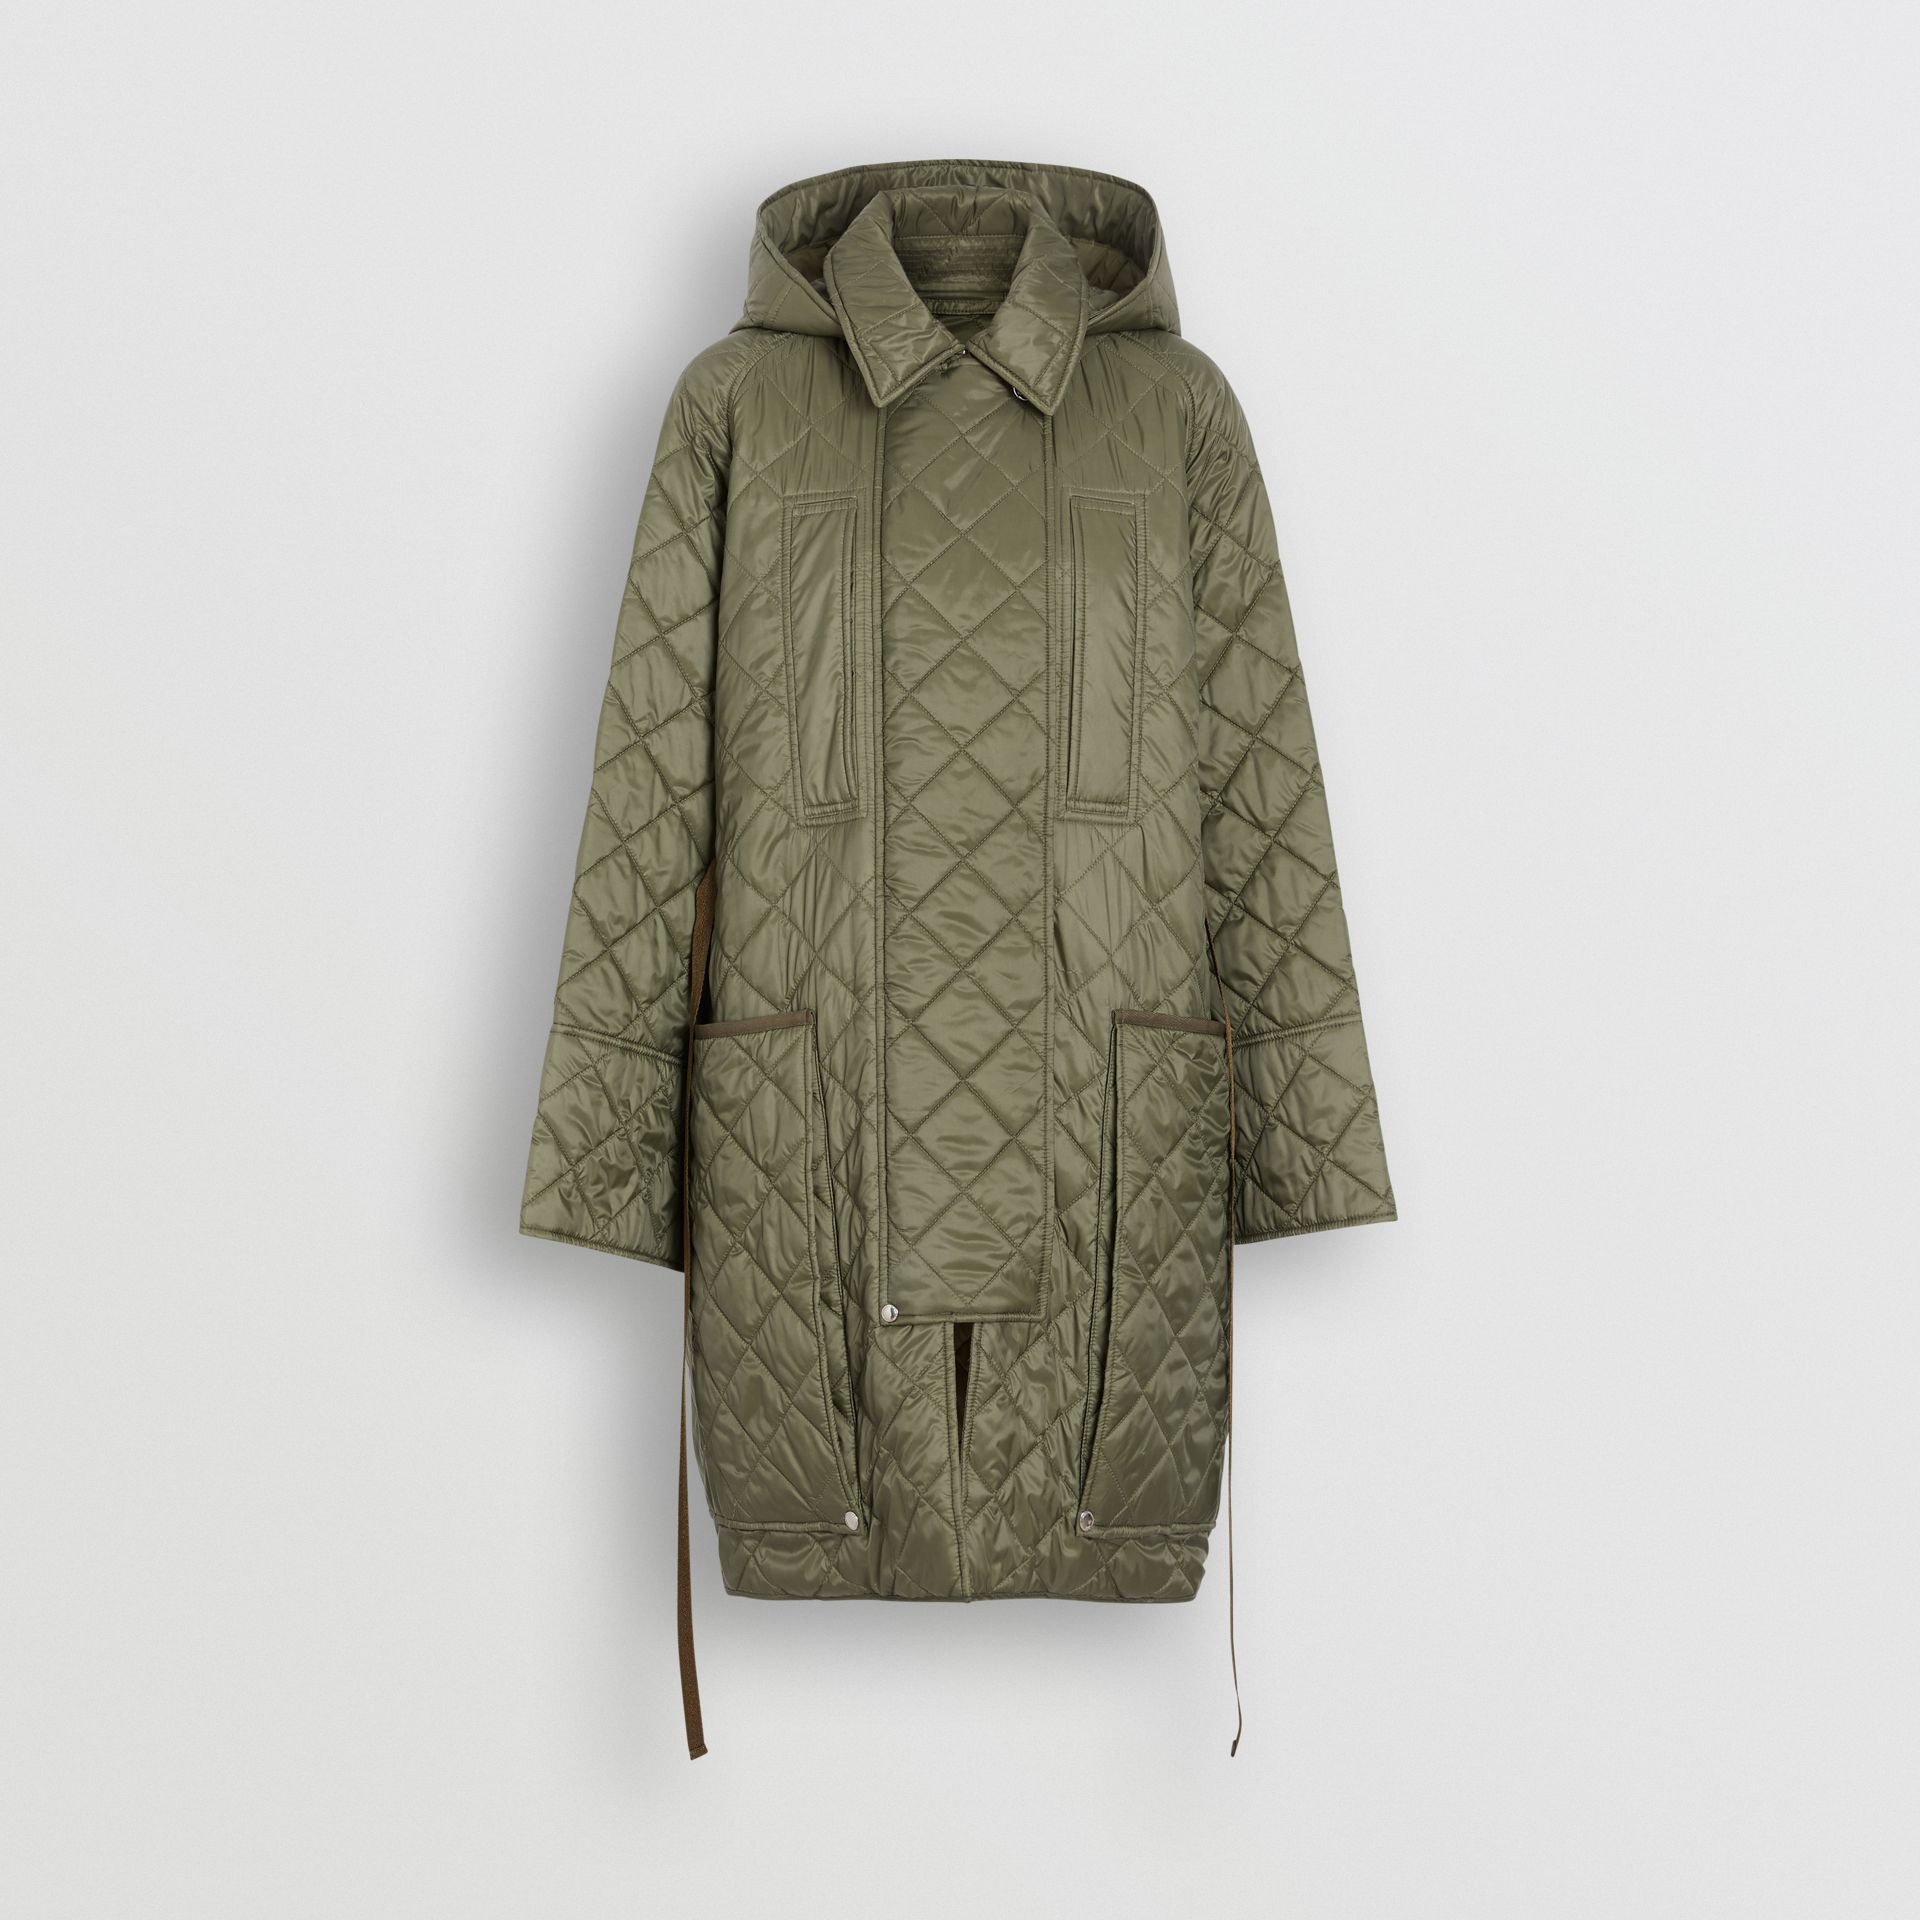 Lightweight Diamond Quilted Hooded Coat in Cadet Green - Women | Burberry - gallery image 3